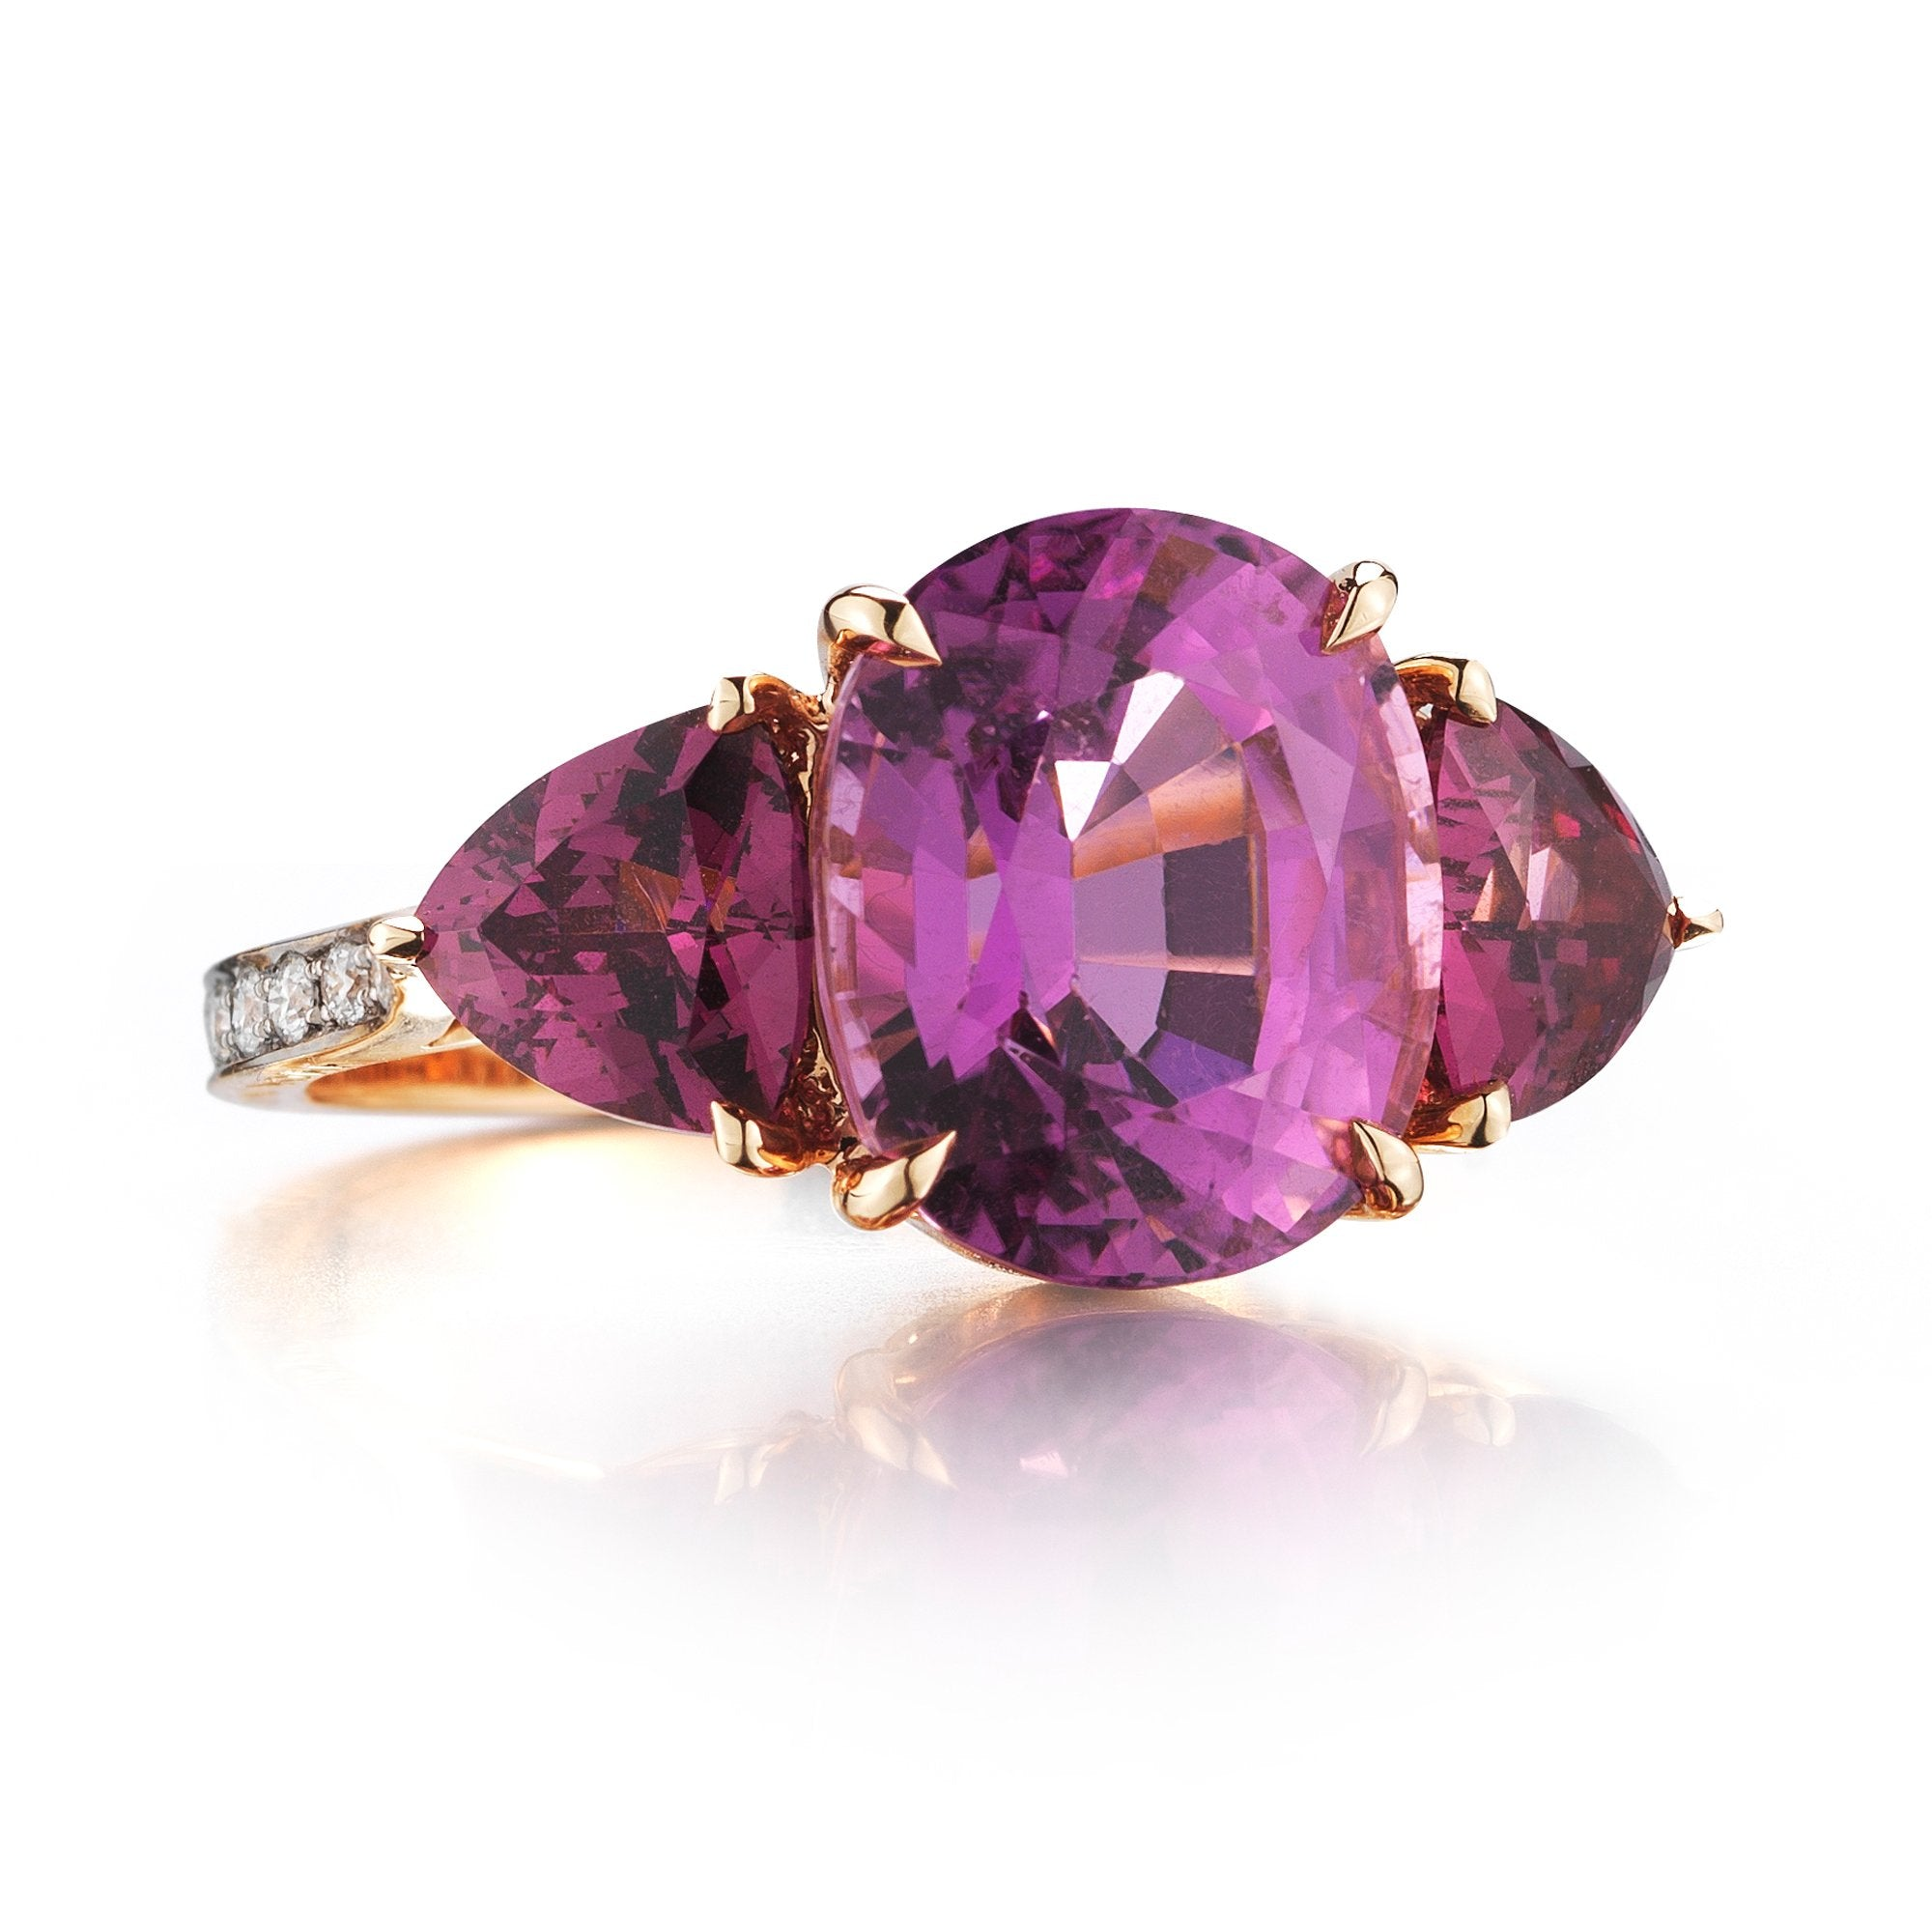 Pink Tourmaline and Garnet Ring - Paolo Costagli - 1